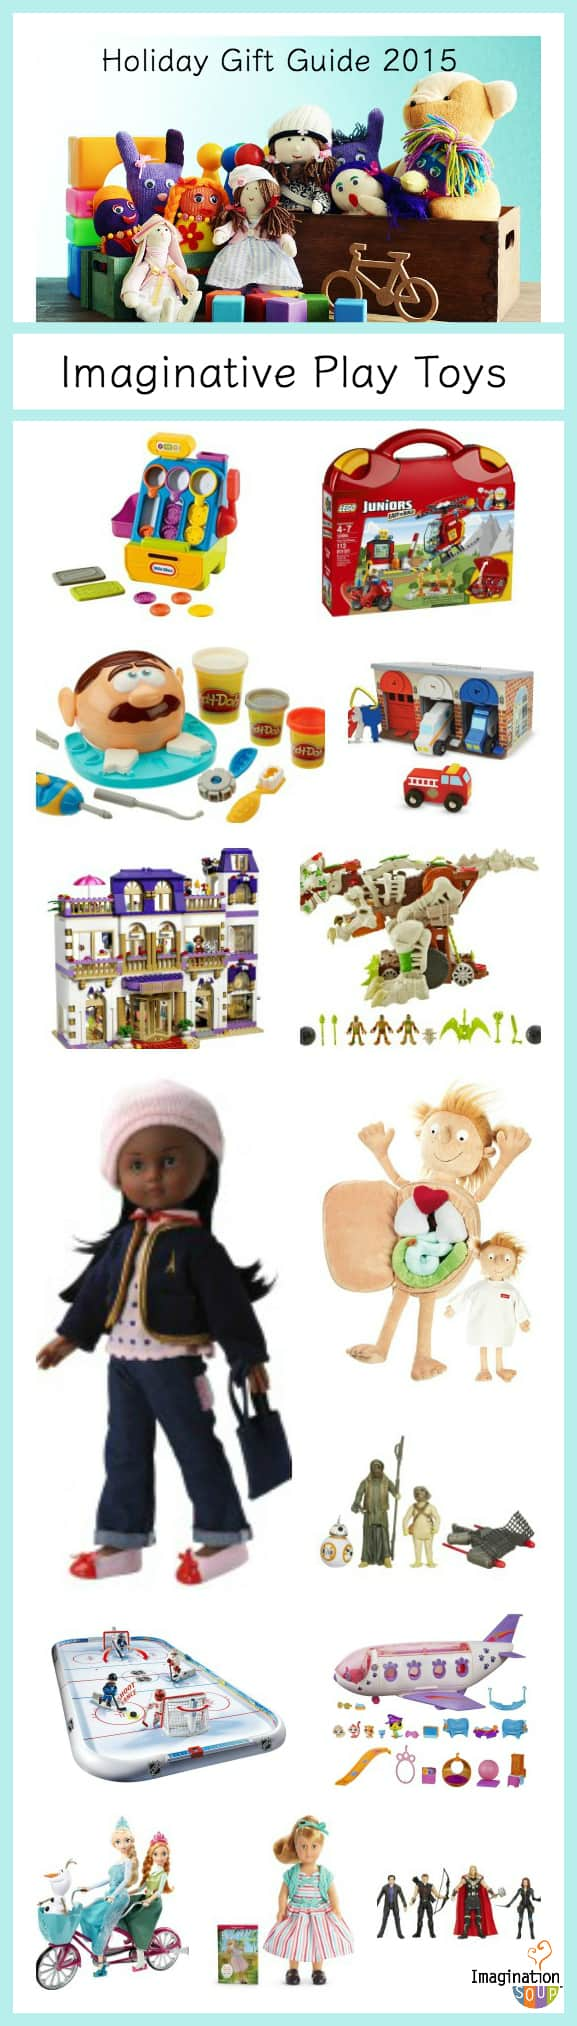 Imaginative Play Toys for Kids